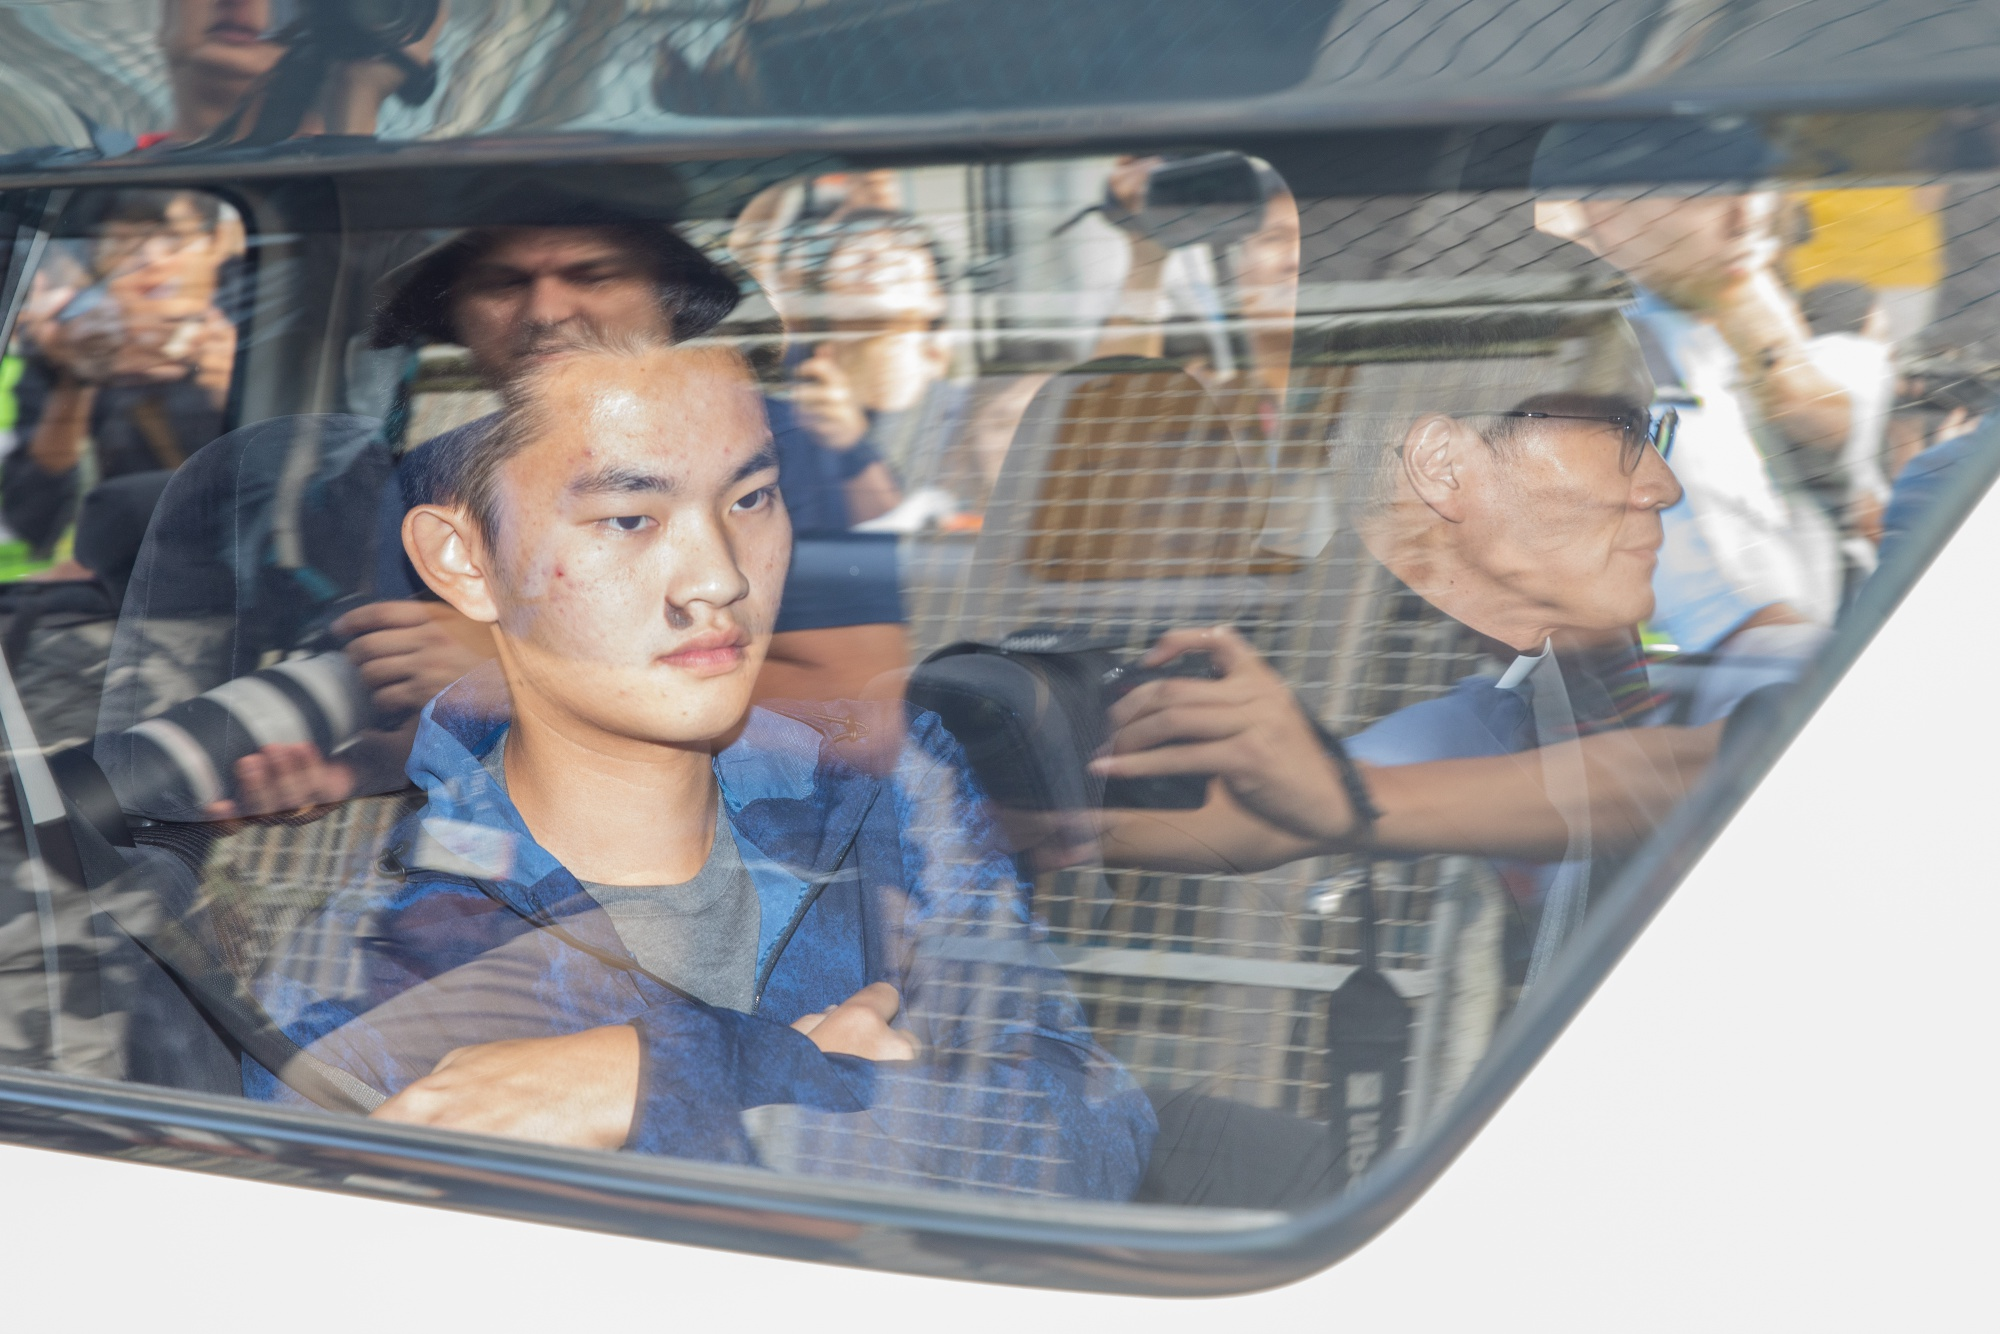 Murder Suspect at Center of Hong Kong Unrest Released From Jail